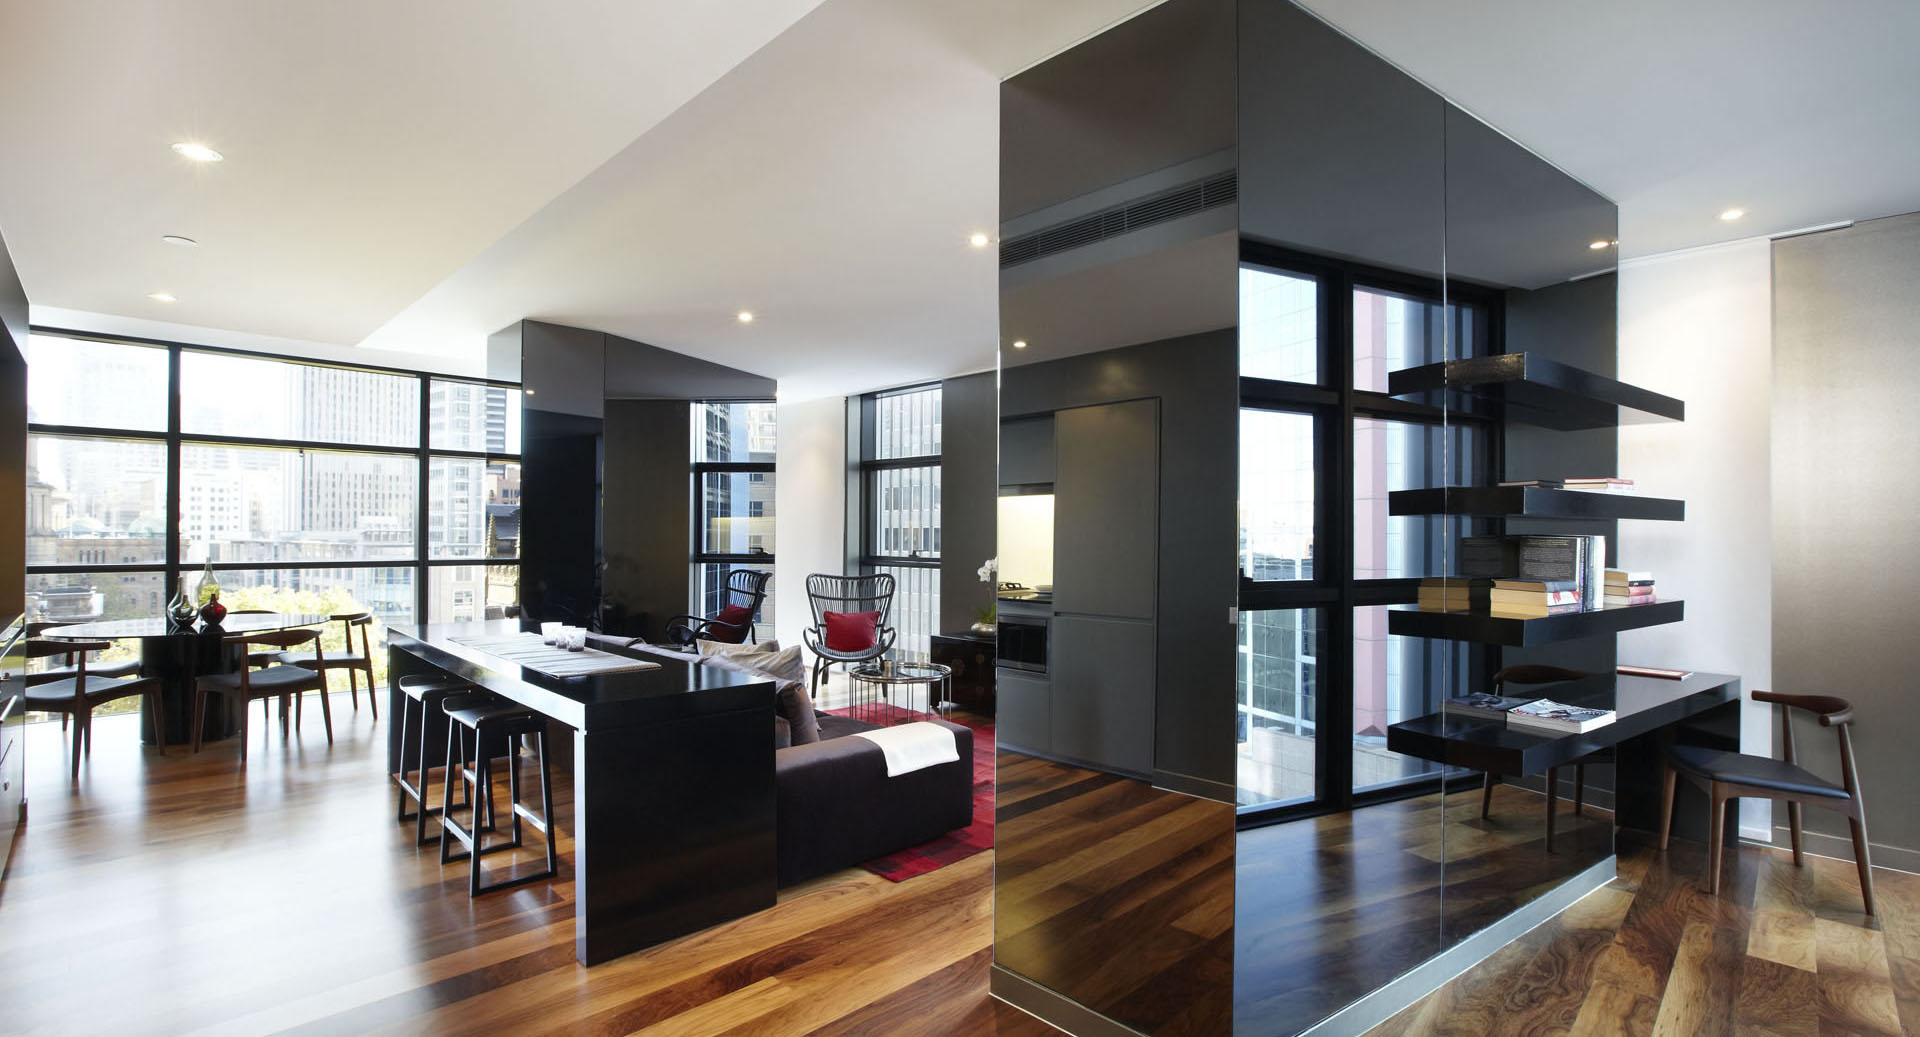 Contemporary apartment designs in sydney idesignarch interior